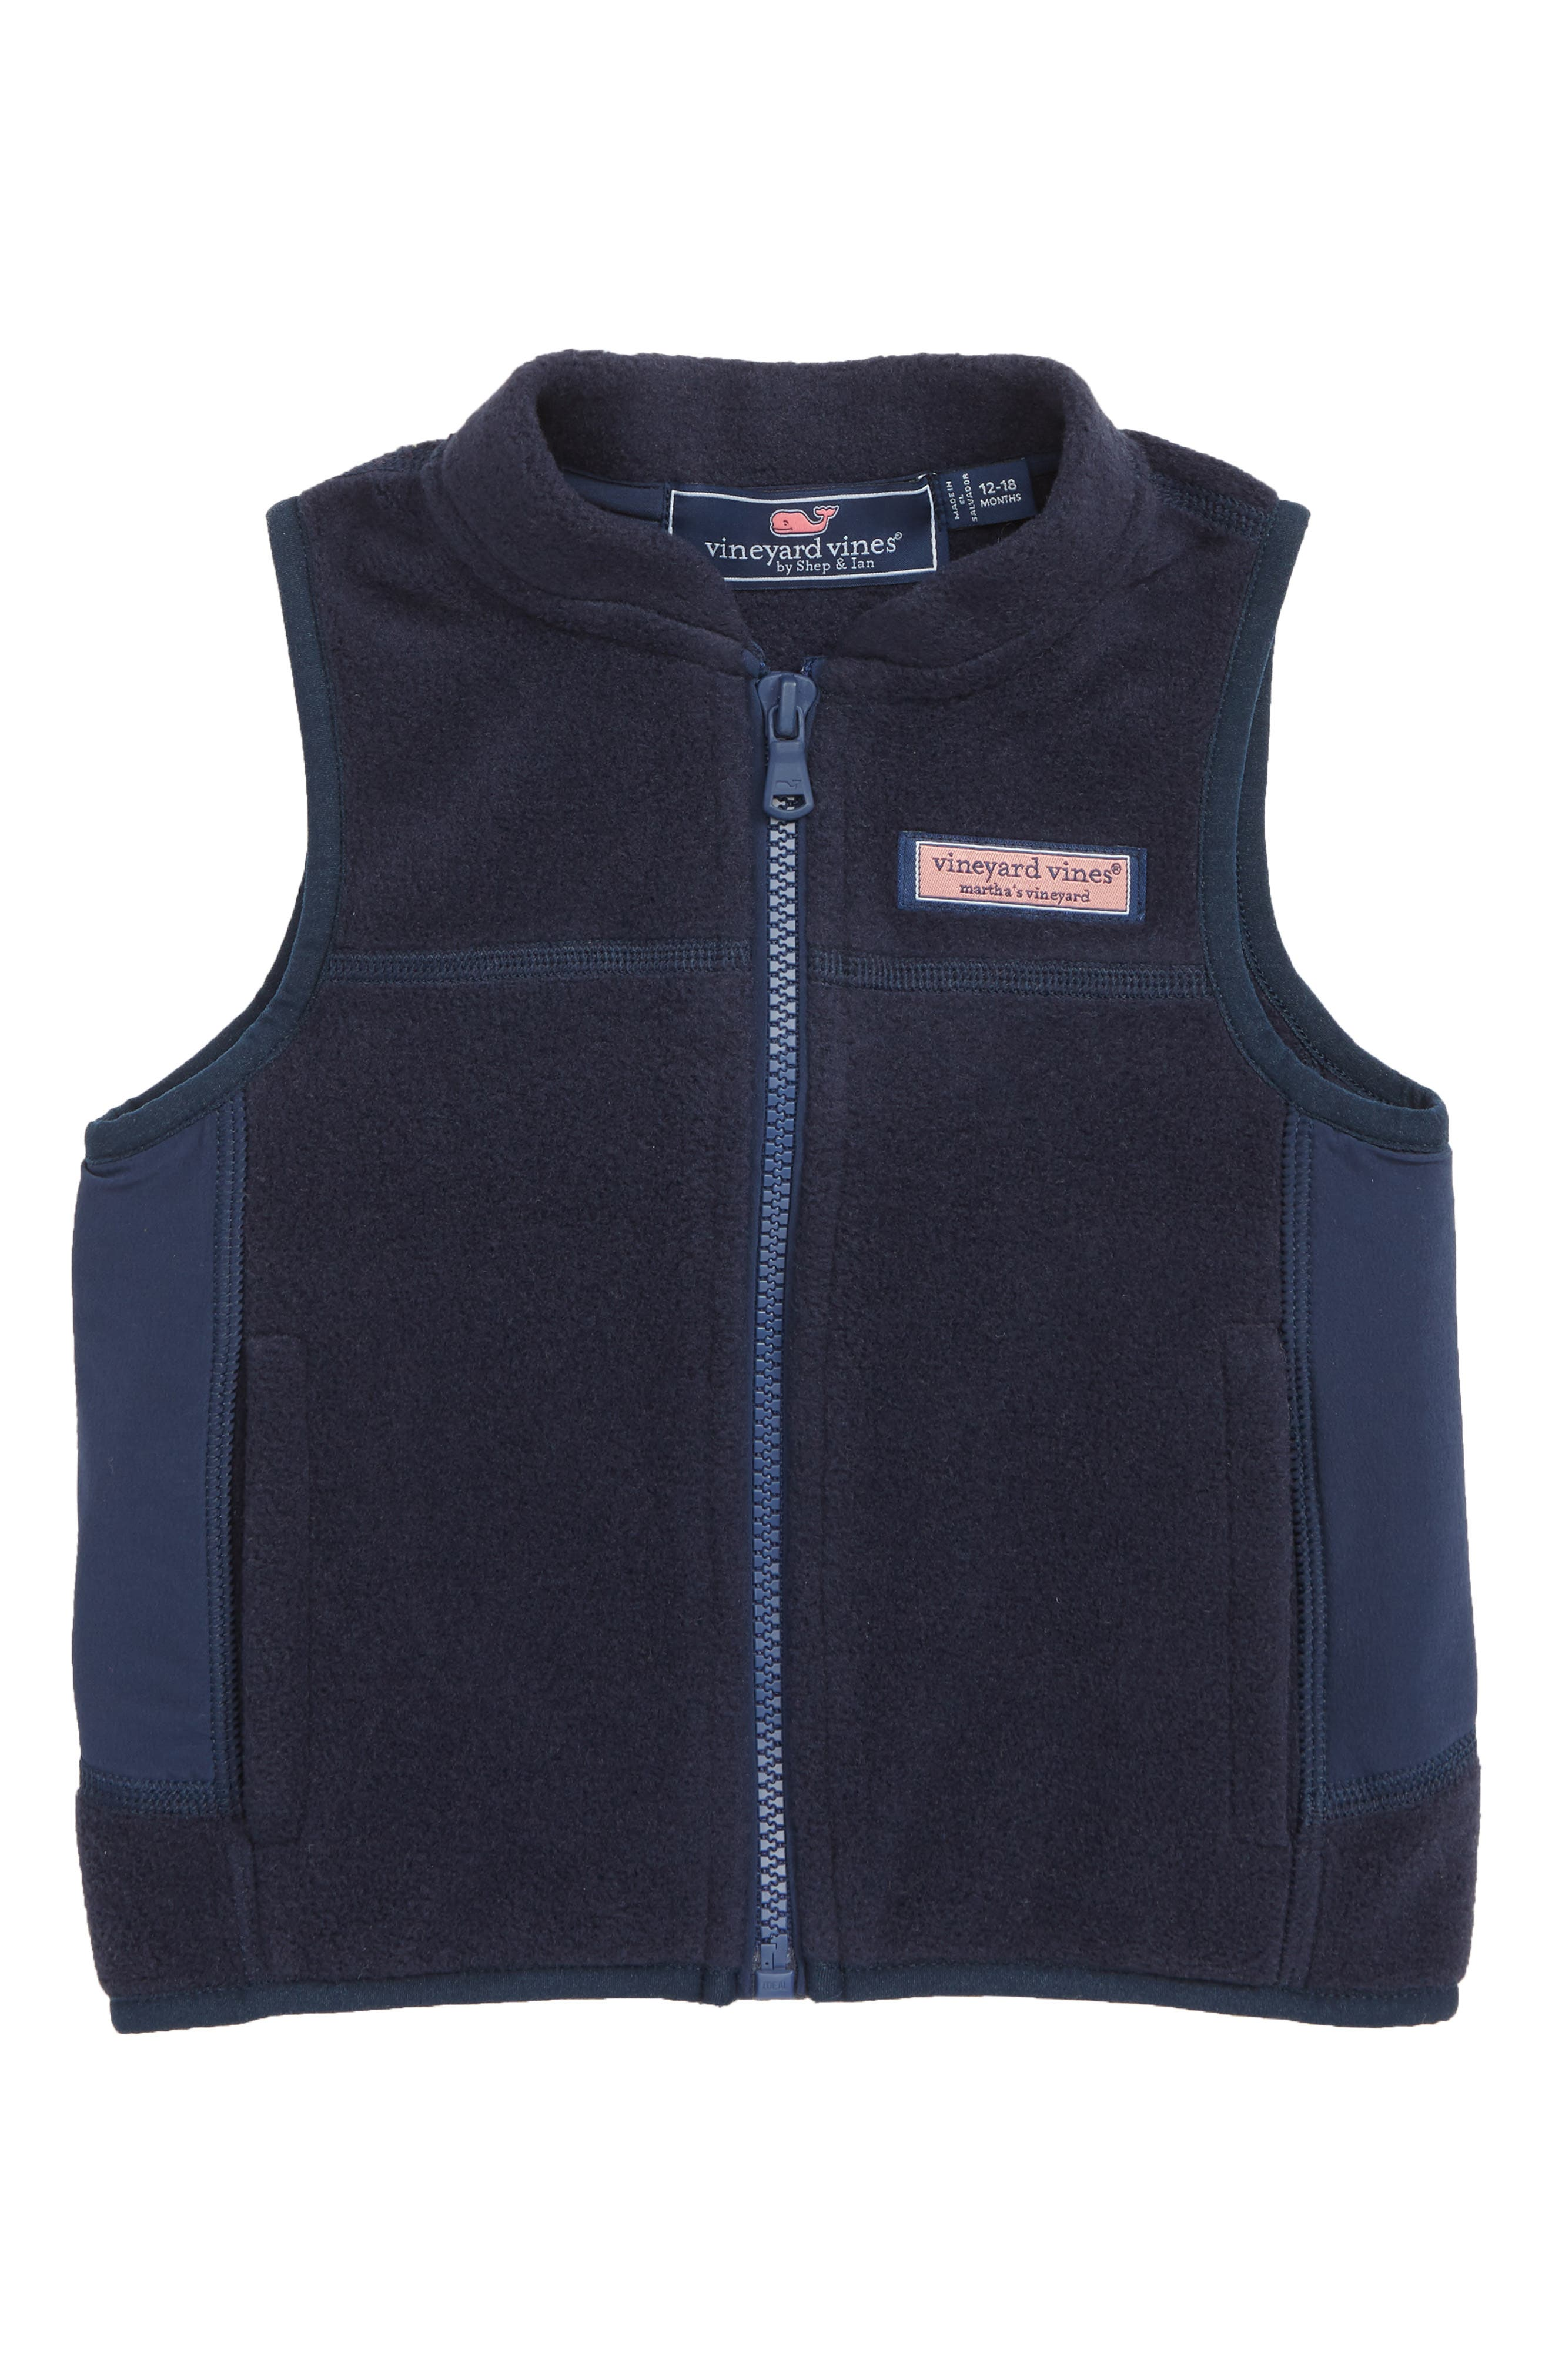 VINEYARD VINES Harbor Fleece Vest, Main, color, VINEYARD NAVY